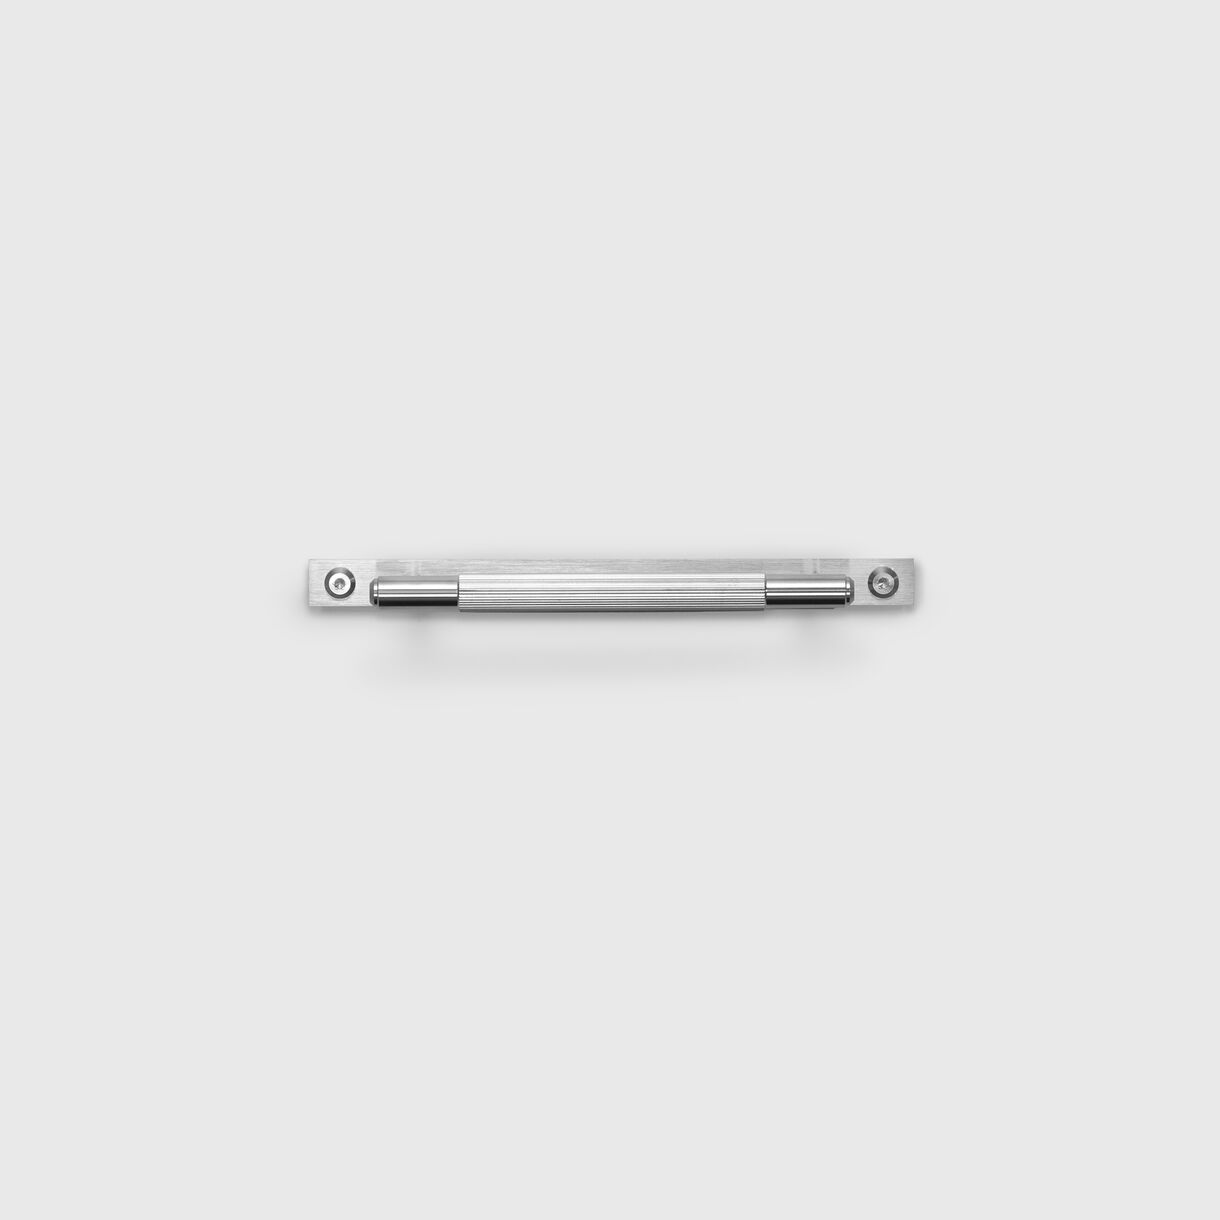 Linear Pull Bar with Plate, Steel